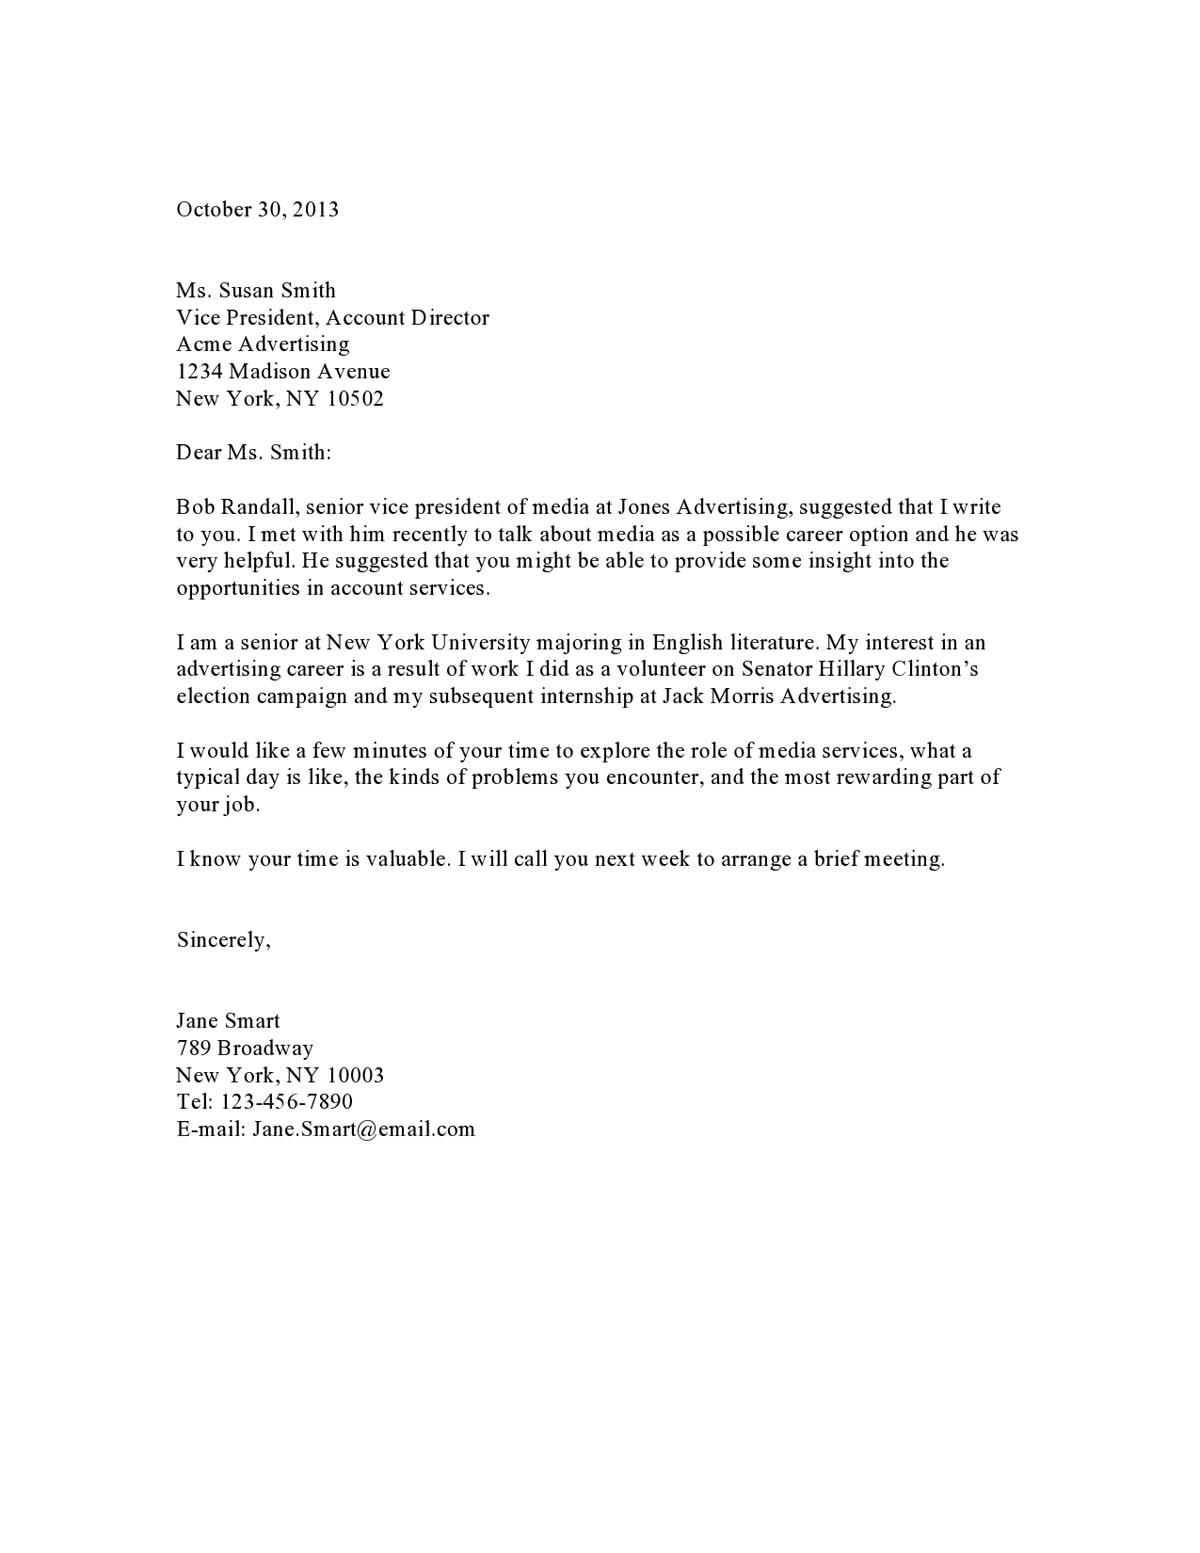 Sample cover letter for applying a job for Cover letter for applying for master degree